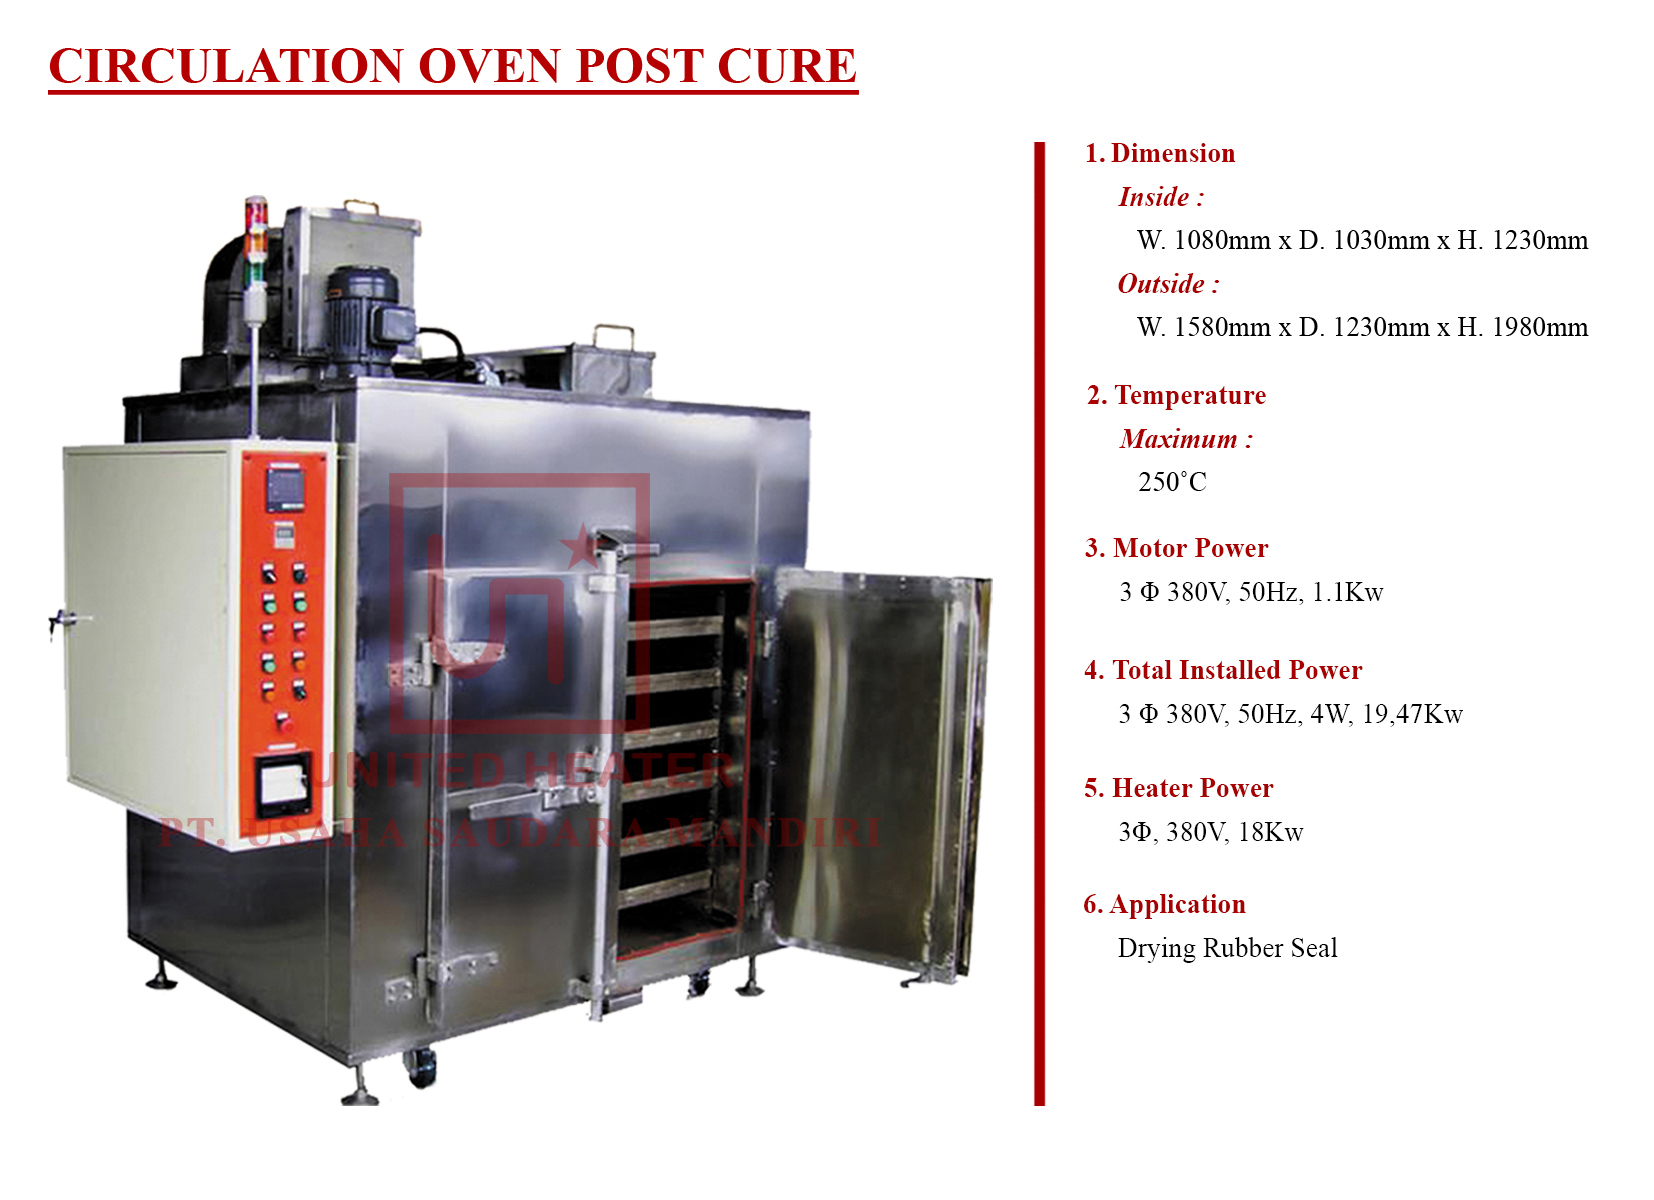 CIRCULATION OVEN POST CURE